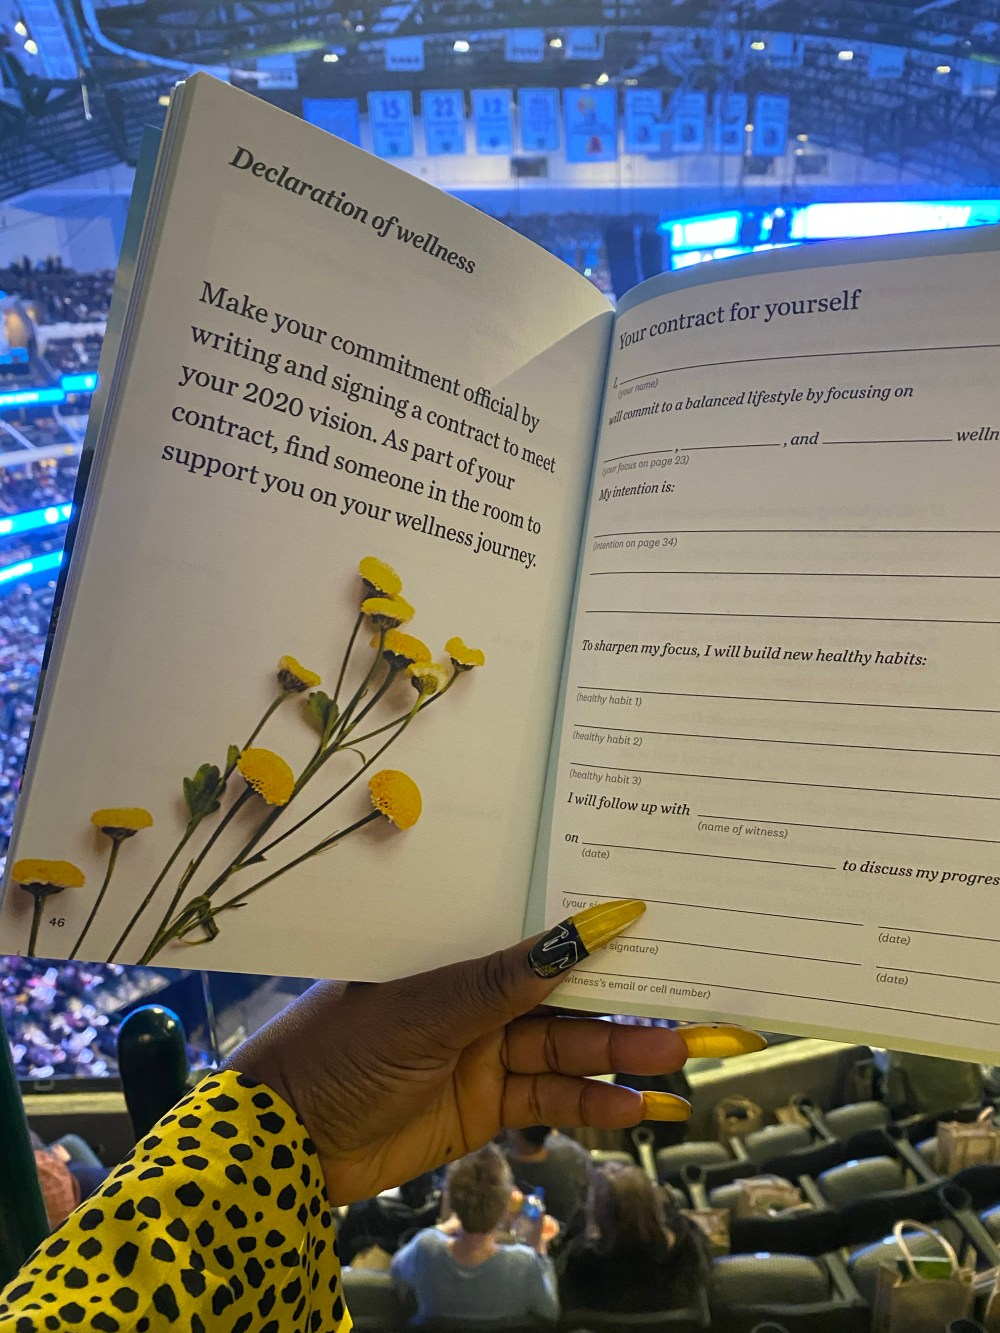 My Day With Oprah, Tracee Ellis Ross, Oprah, WW, Dallas, 2020 Vision Tour, Your life in focus, Your life in focus workbook